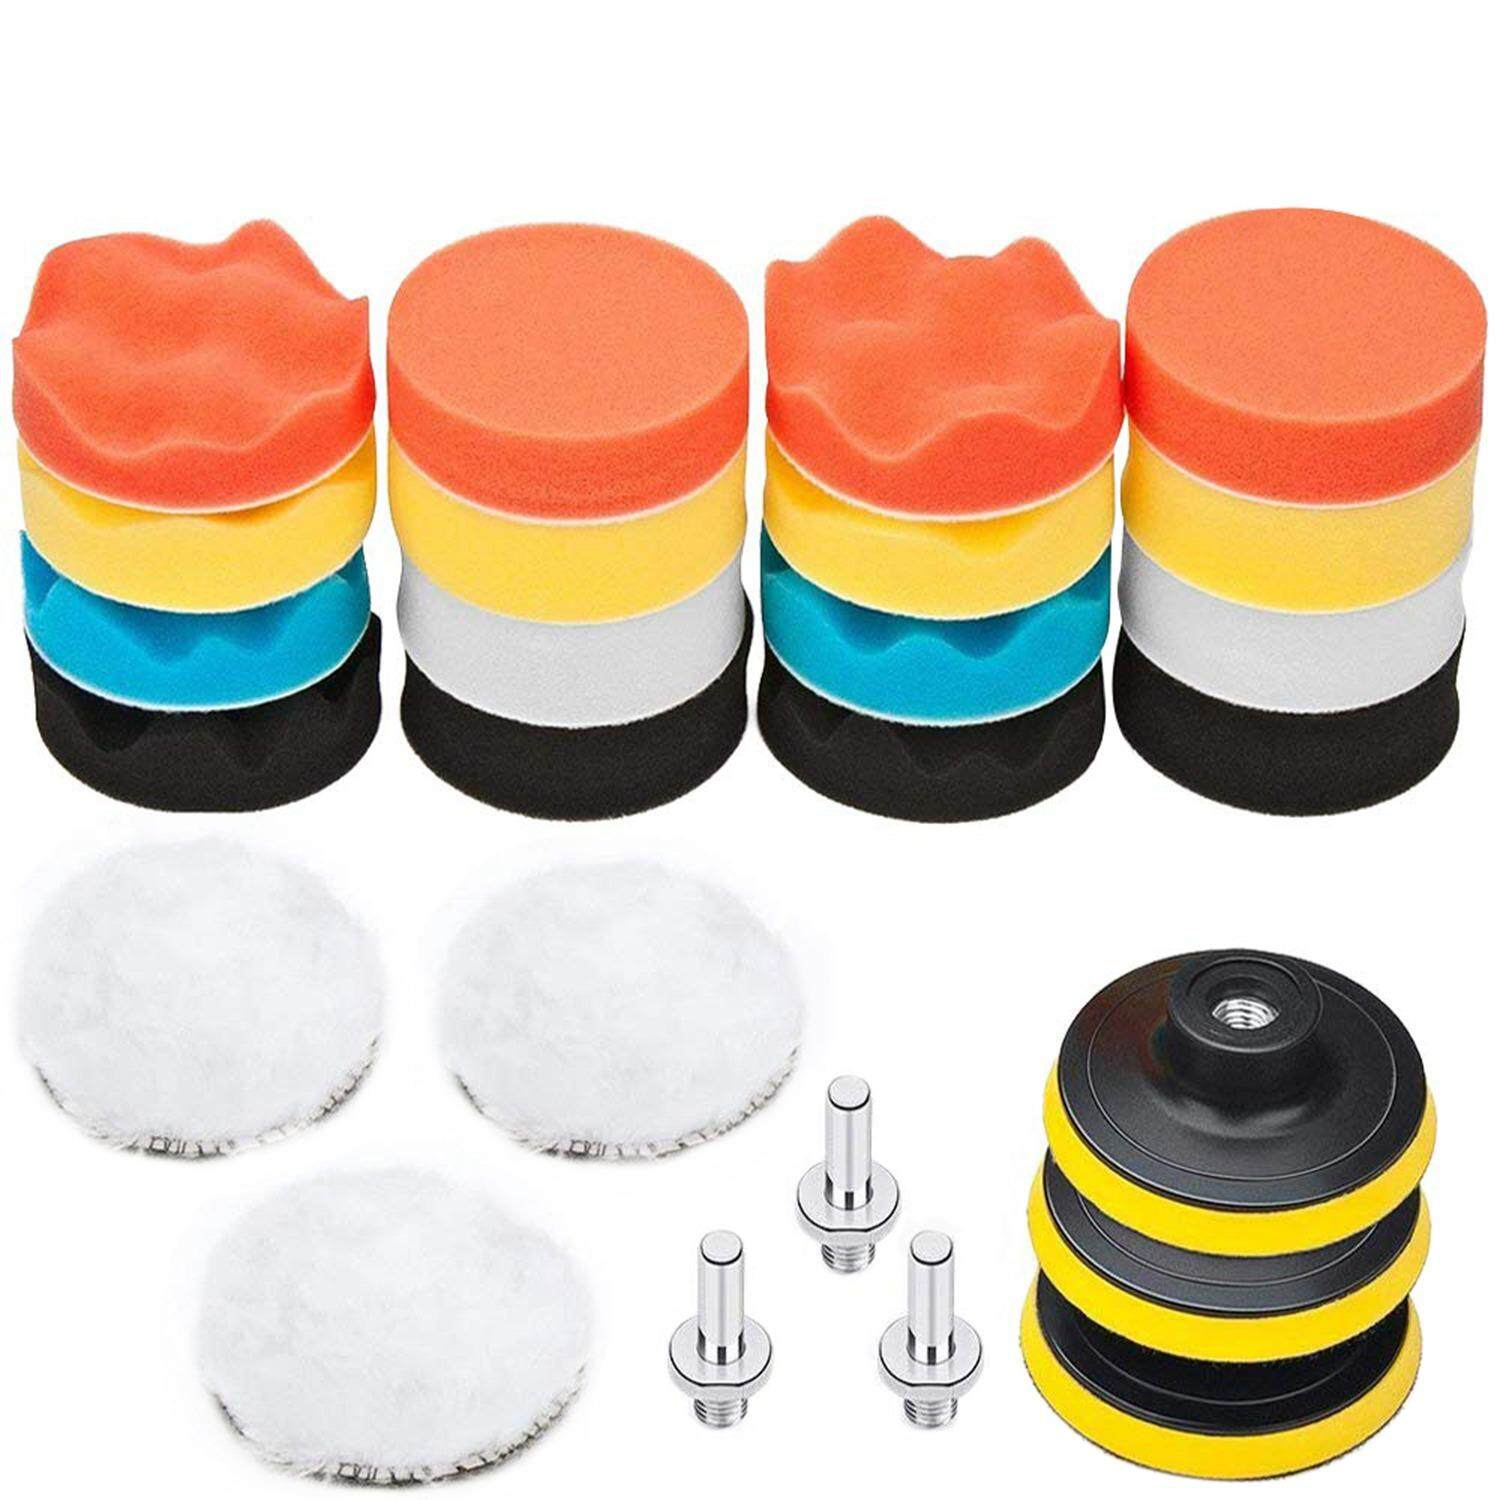 25 Pack 3 Inch Polishing Pads, Sponge Buffer Pads Set Kit With M10 Drill Adapter, Compound Auto Car Polisher By Dragonlee.